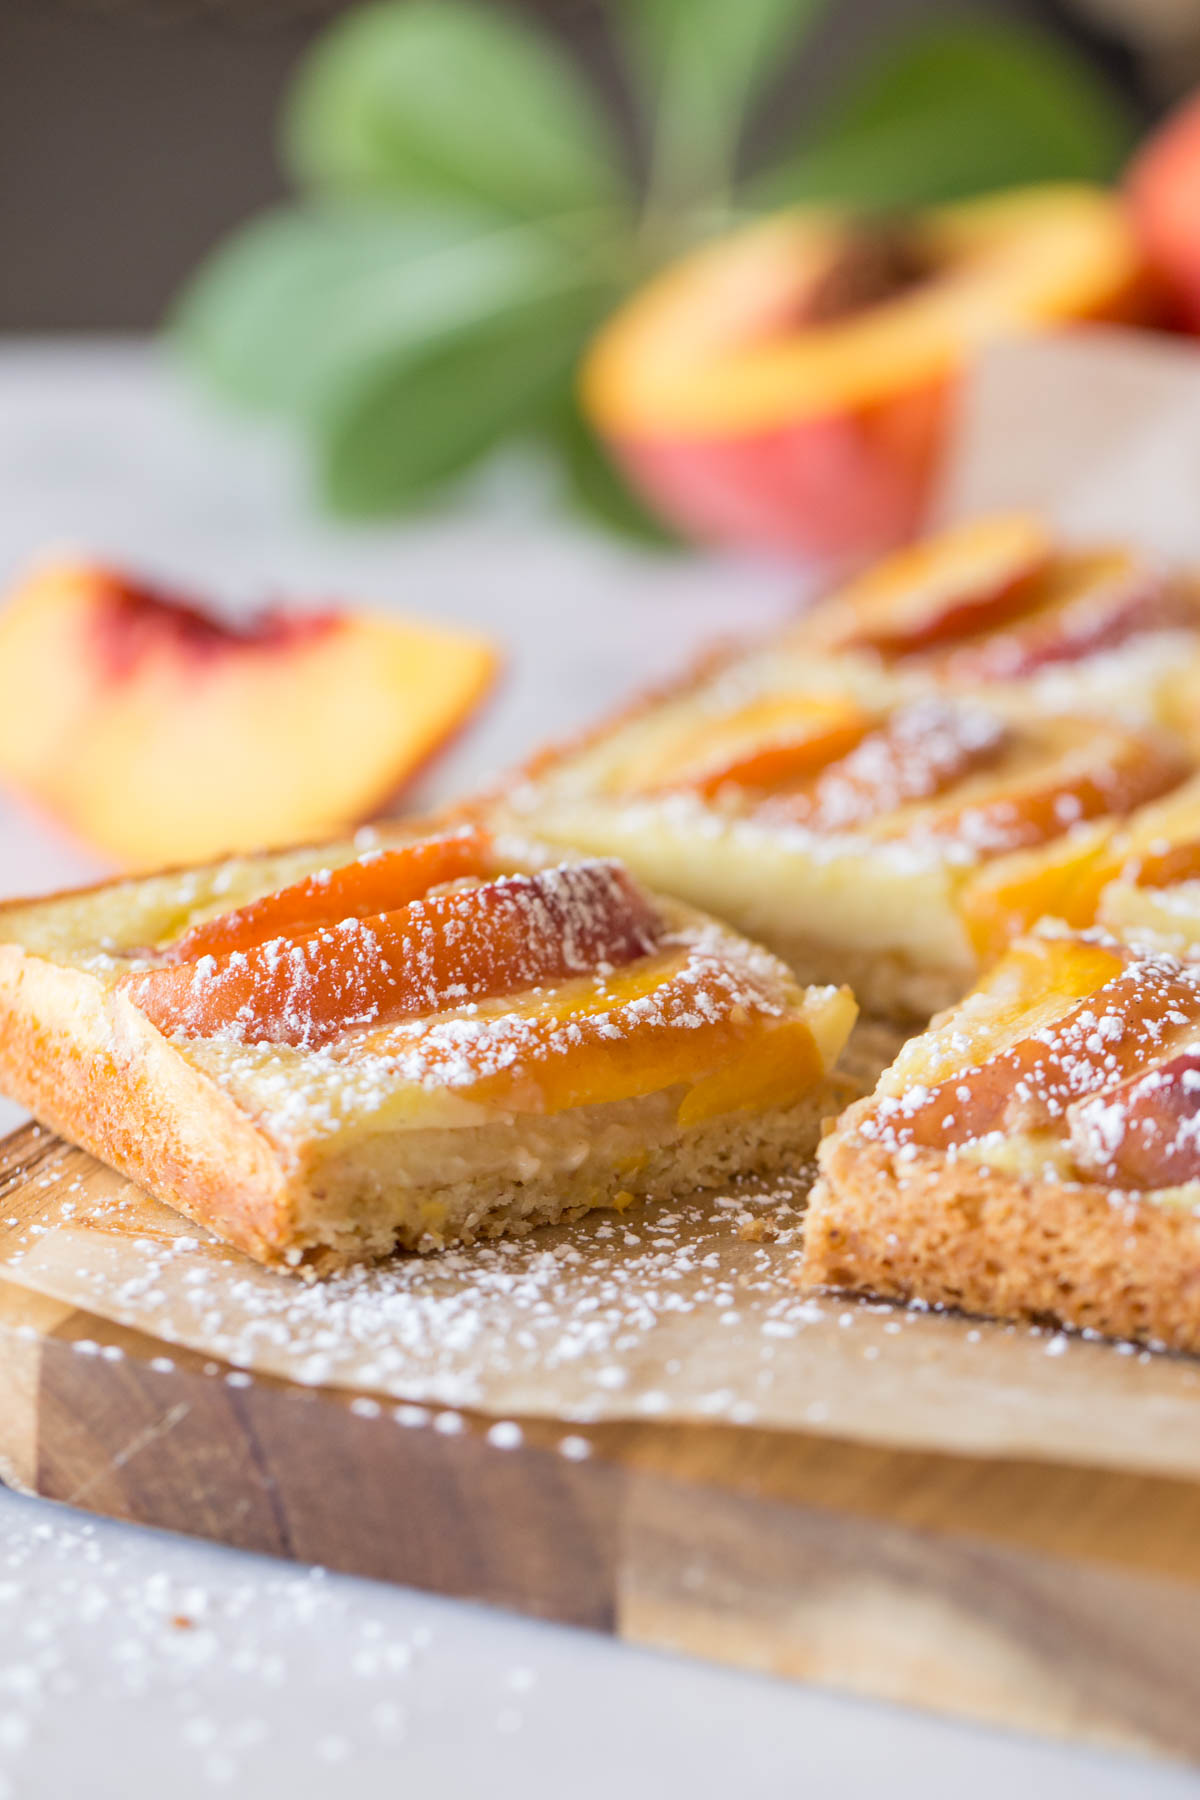 Peaches and Cream Shortbread Bars on a cutting board.